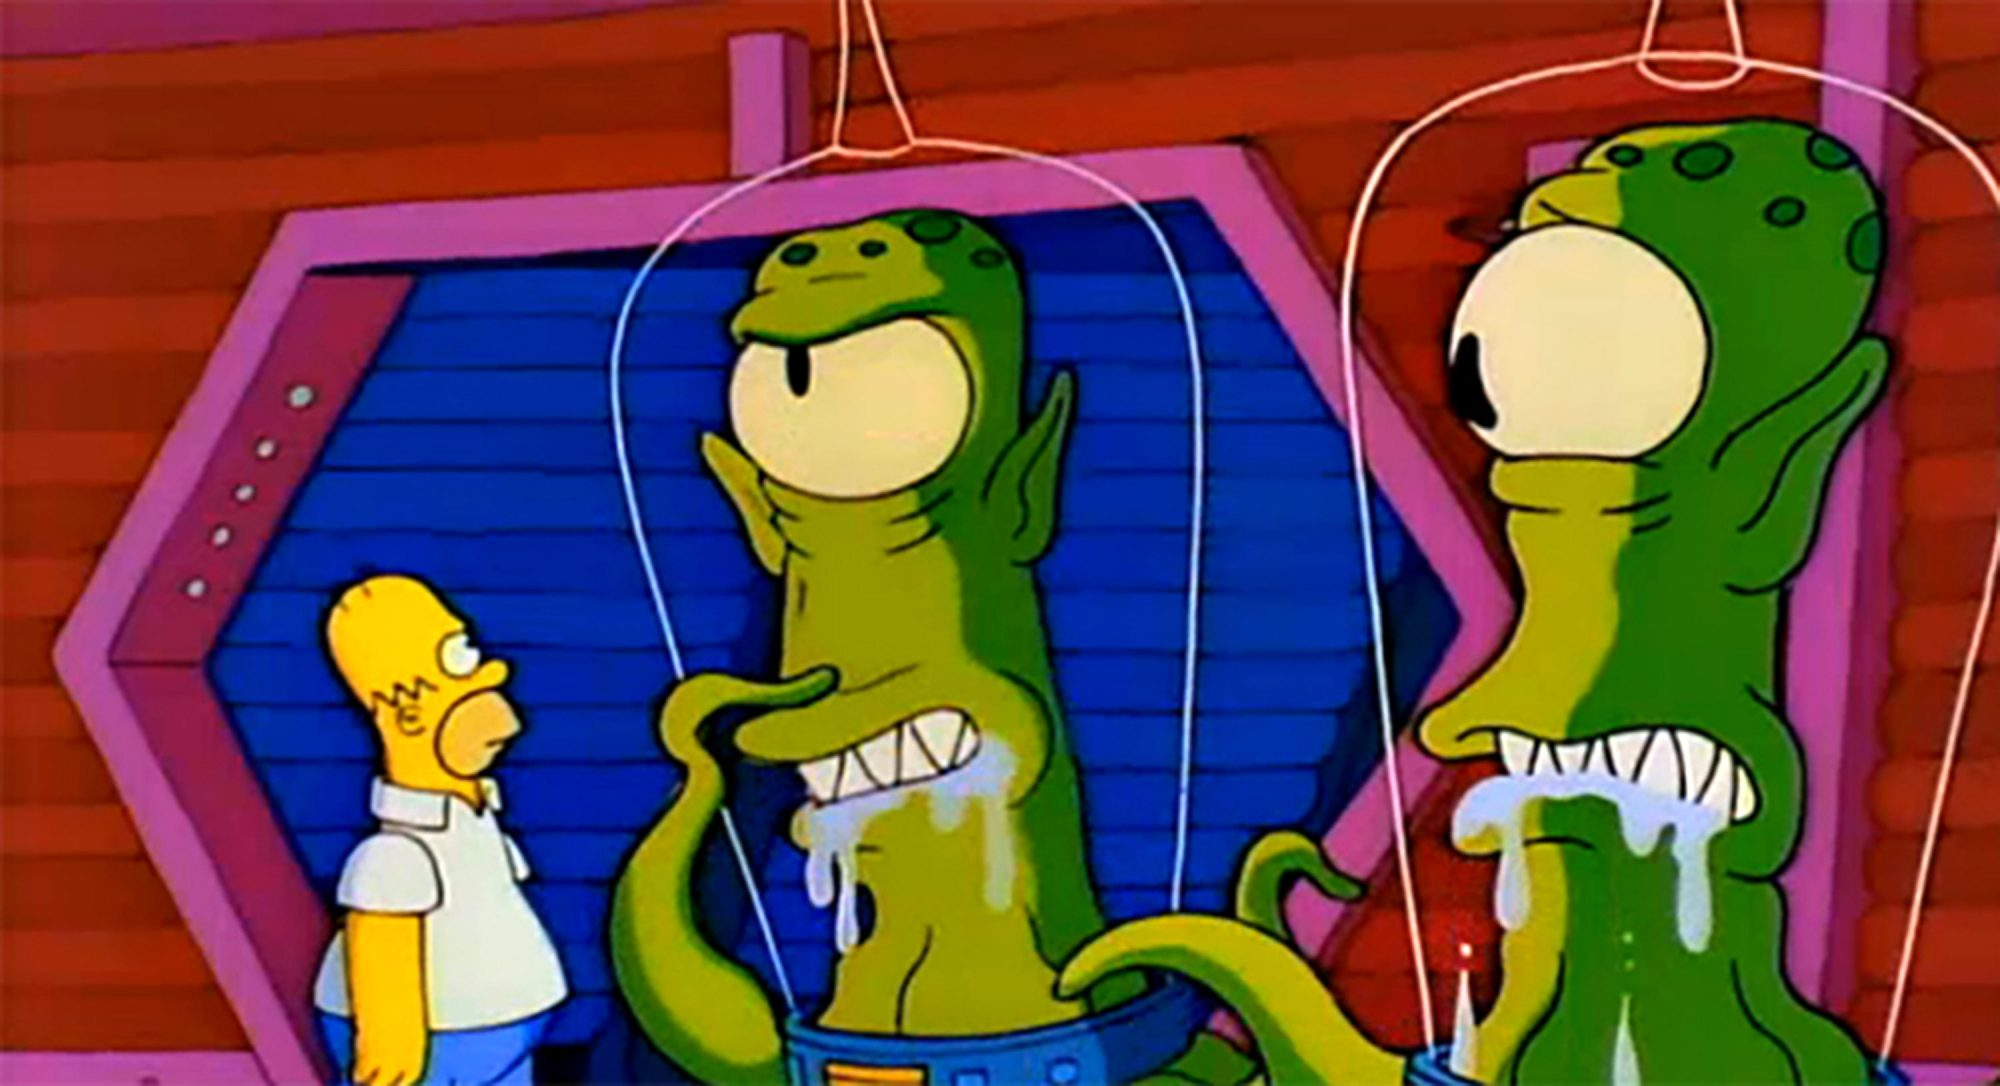 Simpsons writers pick their all-time favorite 'Treehouse of Horror' segments